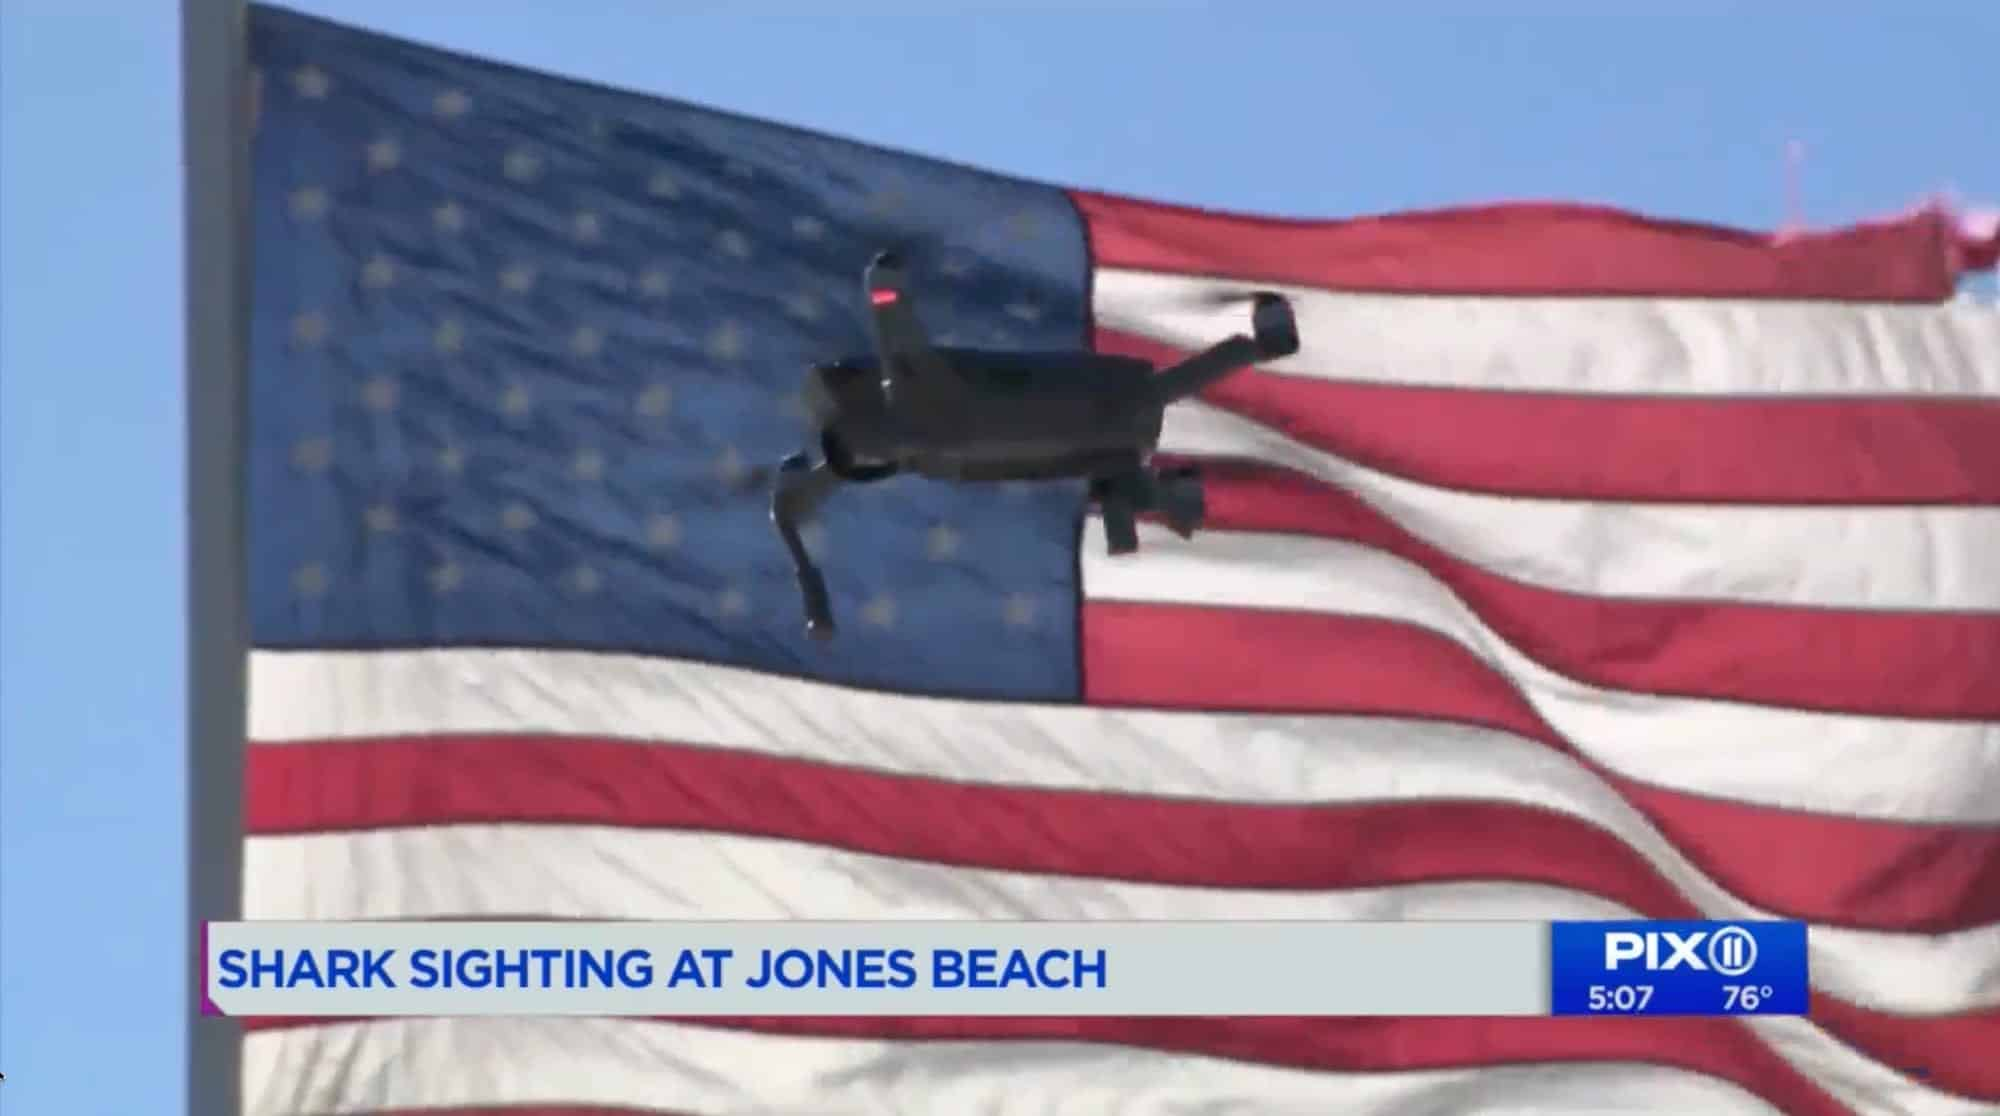 Jones Beach lifeguards with drone keep swimmers safe from feeding sharks over Labor Day Weekend